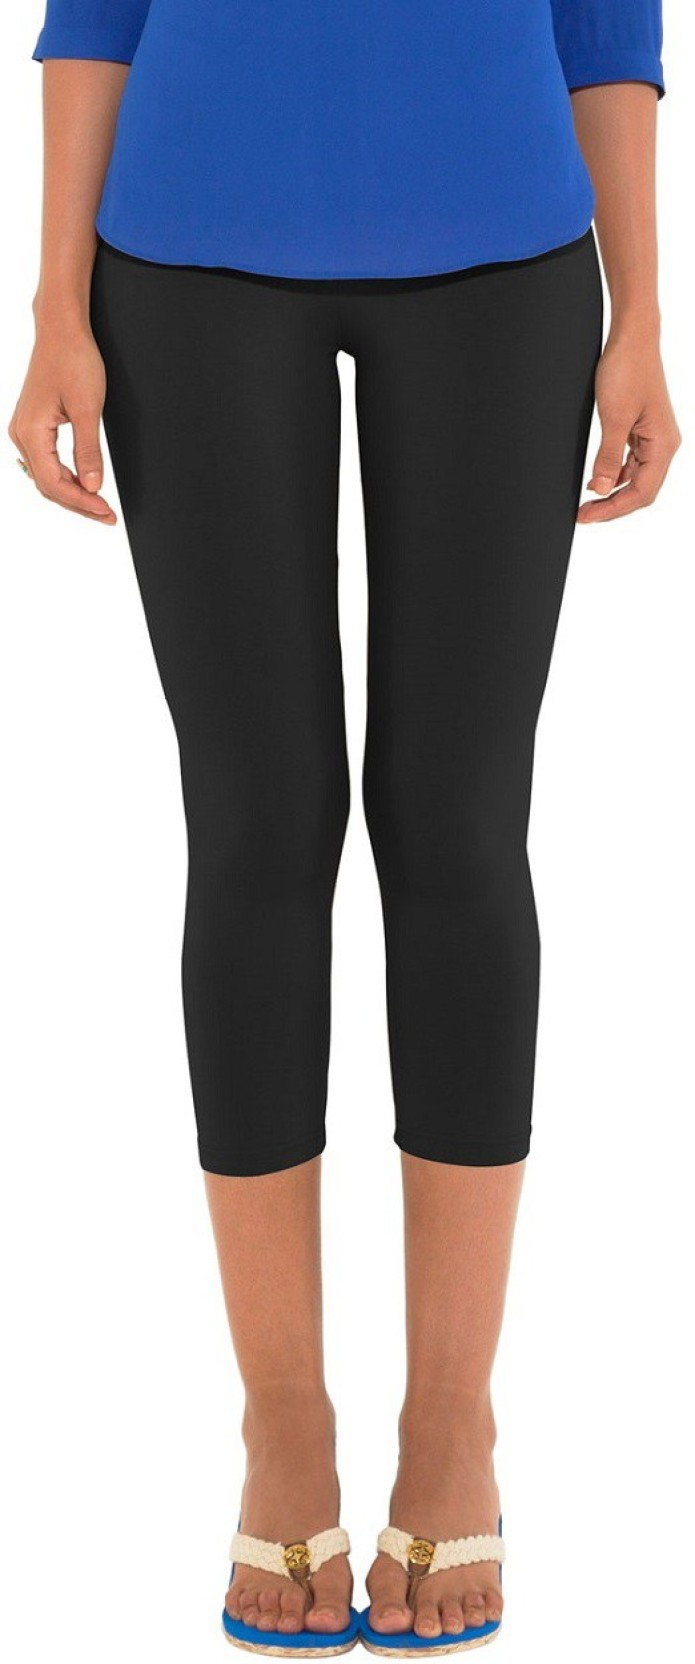 95a01643f469a Go Colors Ladies 3/4 Leggings Women's Black Capri. ADD TO CART. BUY NOW